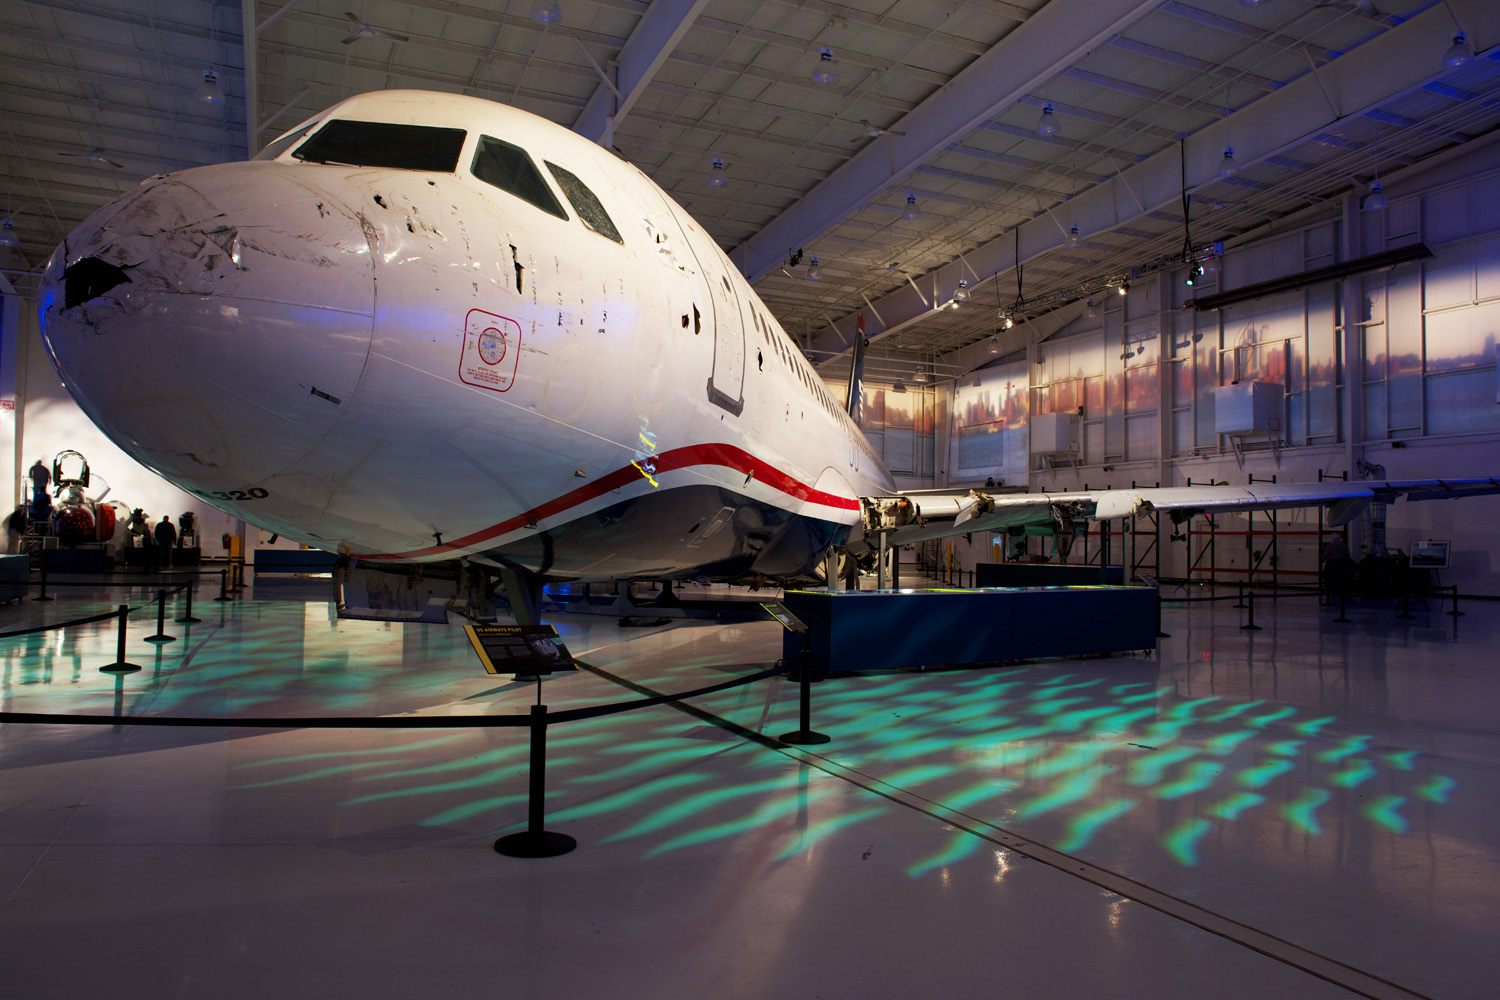 Carolinas Aviation Museum, North Carolina, USA. High-end multimedia technologies of theatrical lighting and audio-visual displays are used to activate the aircraft, and spatial planning is carefully managed to ensure seamless flow of visitors between enormous artefacts.